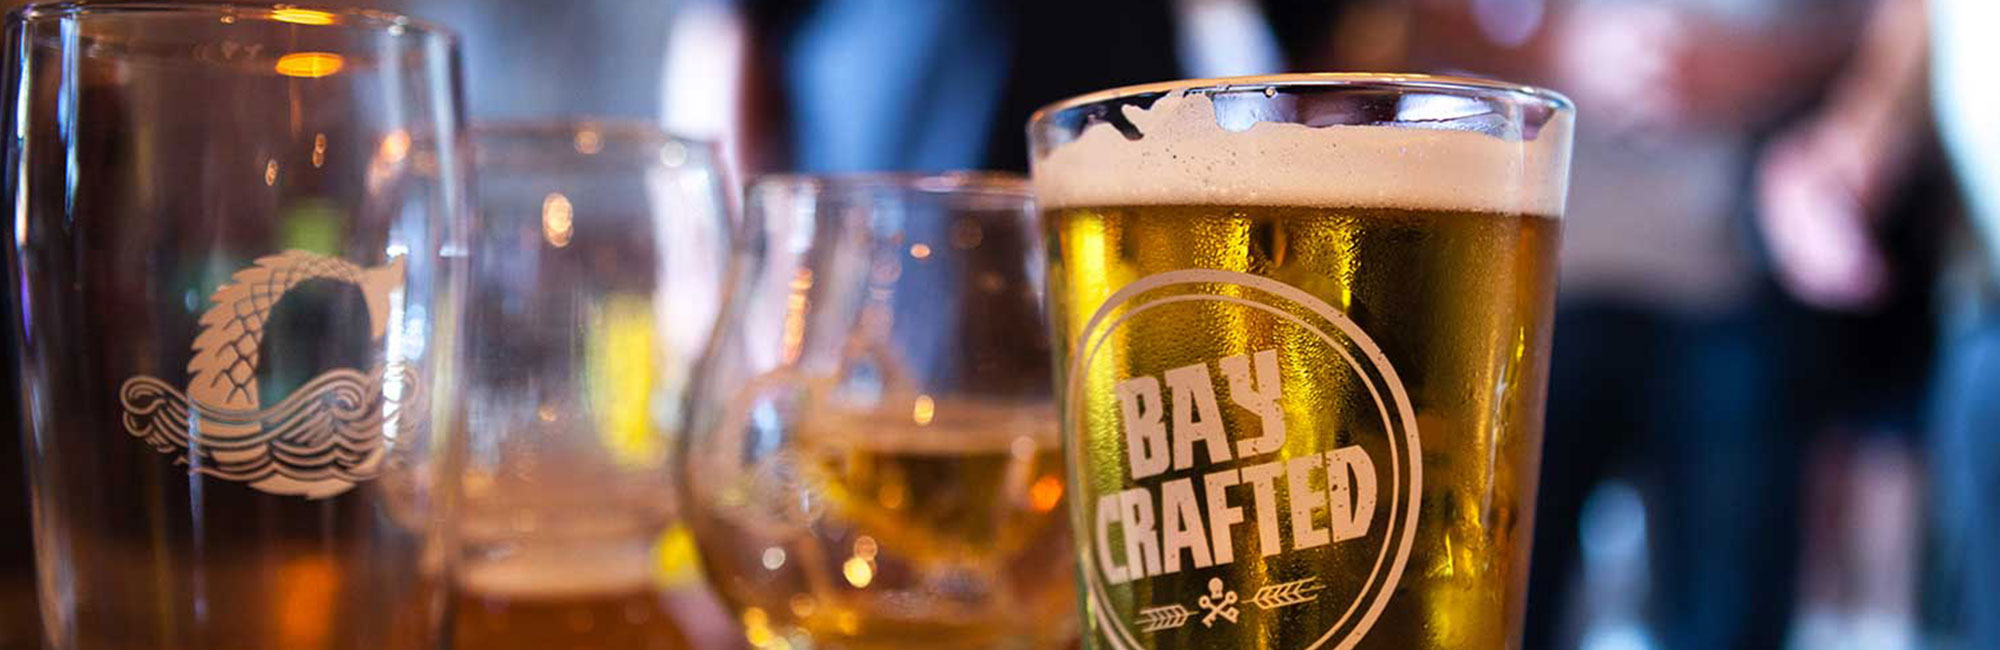 bay crafted craft beer